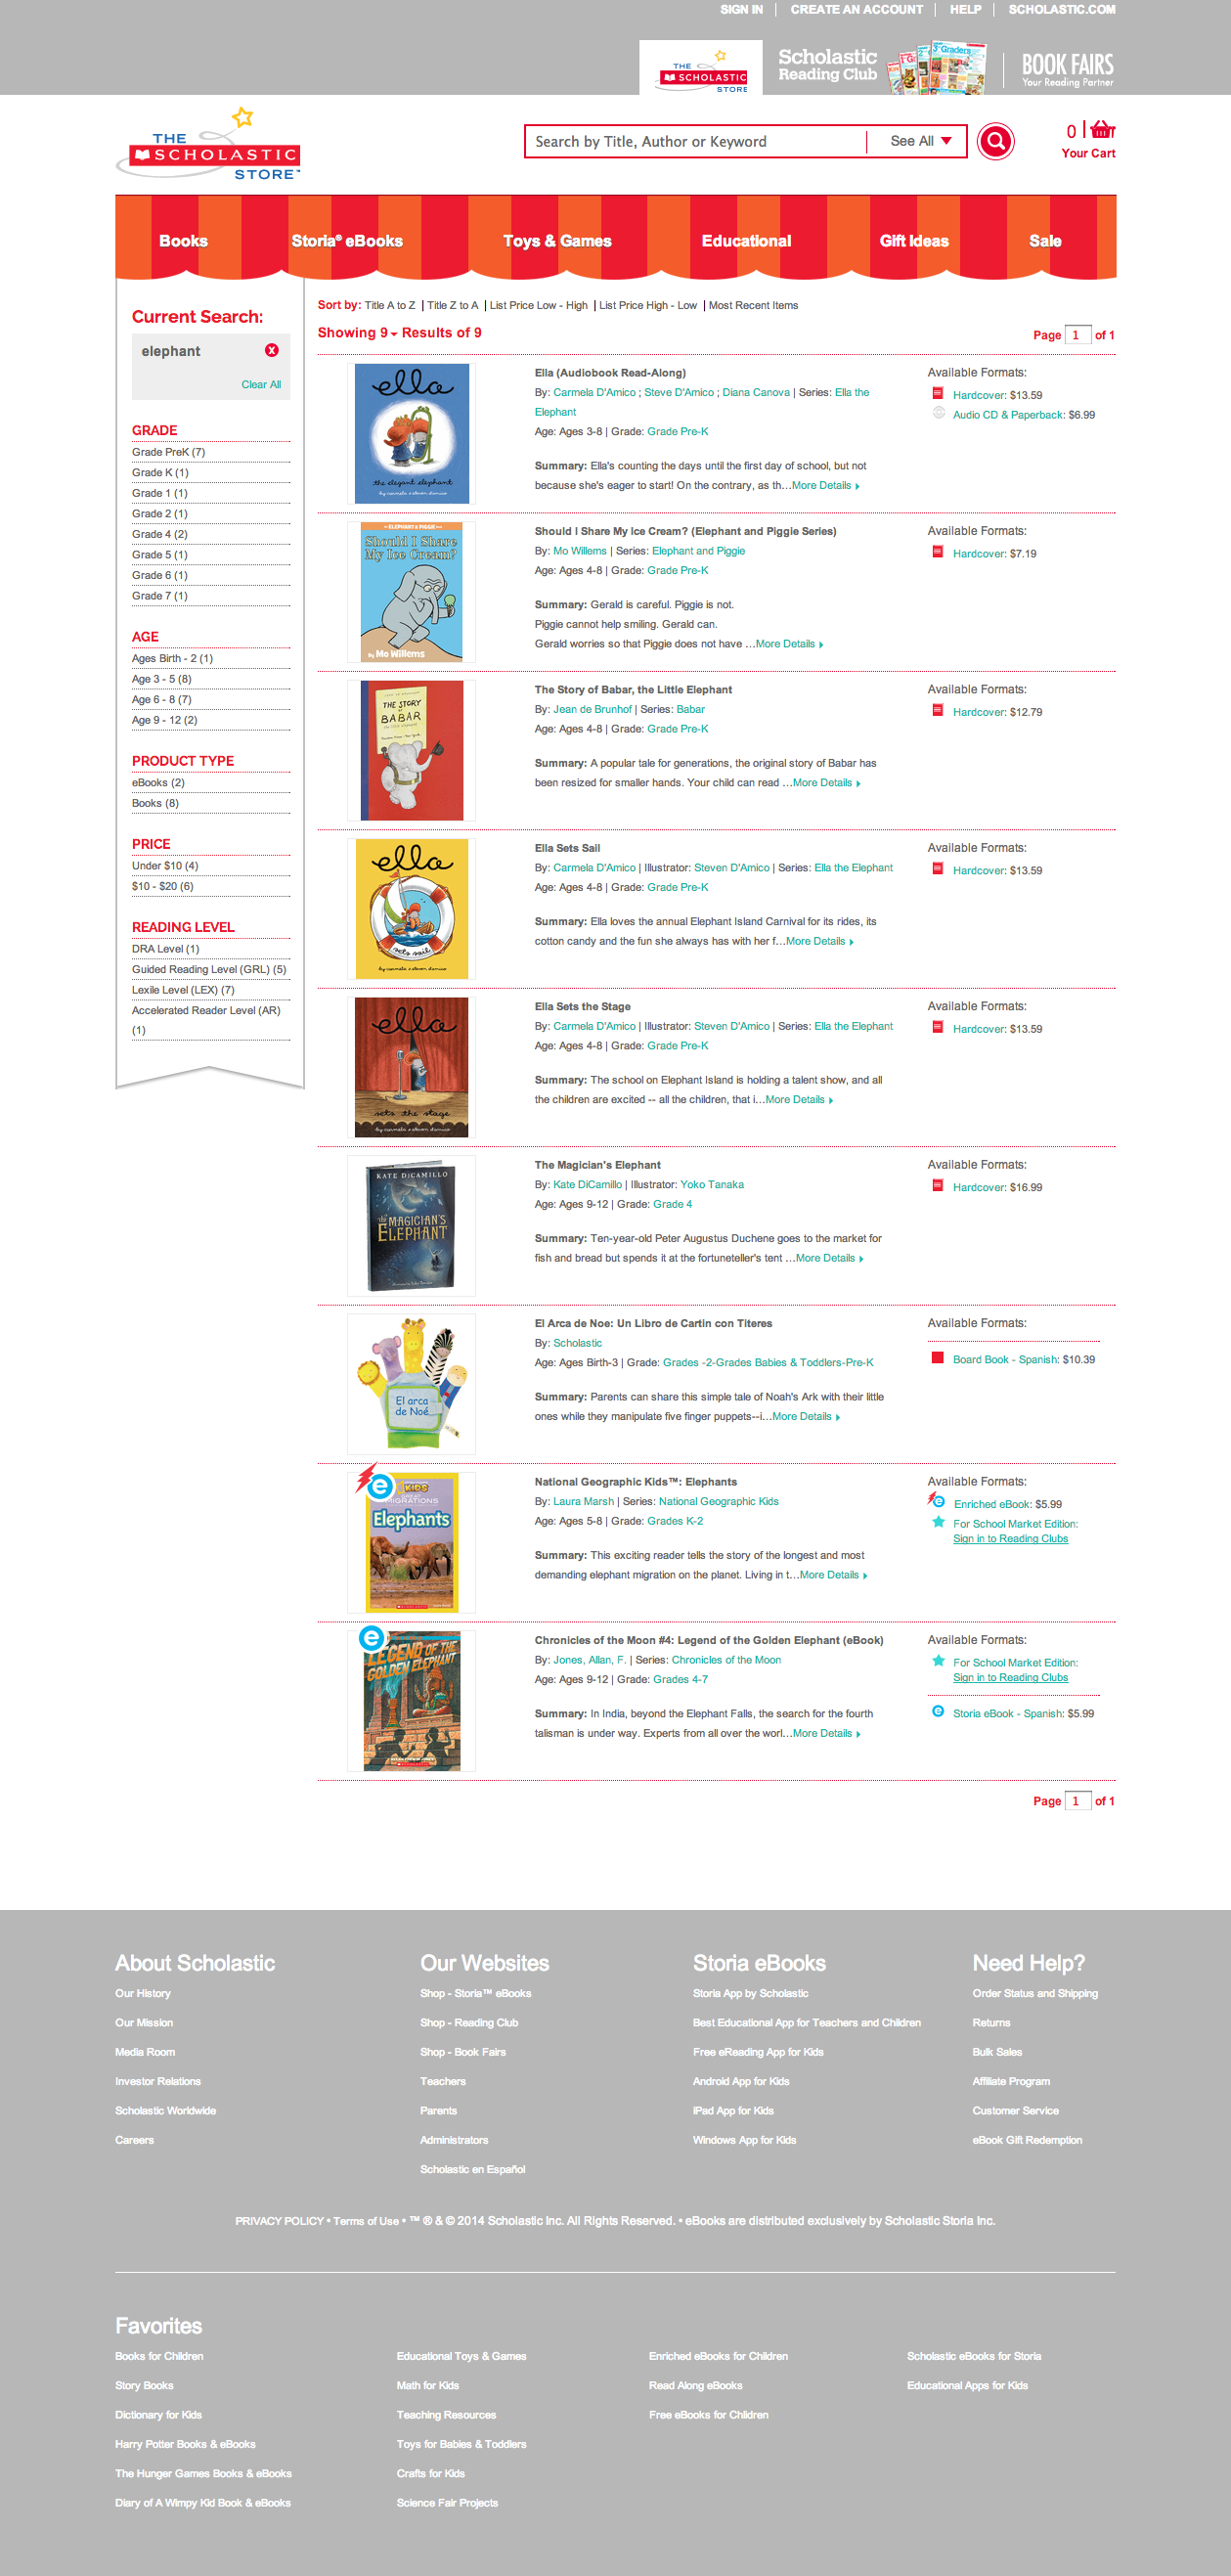 Scholastic Store Online search results page.